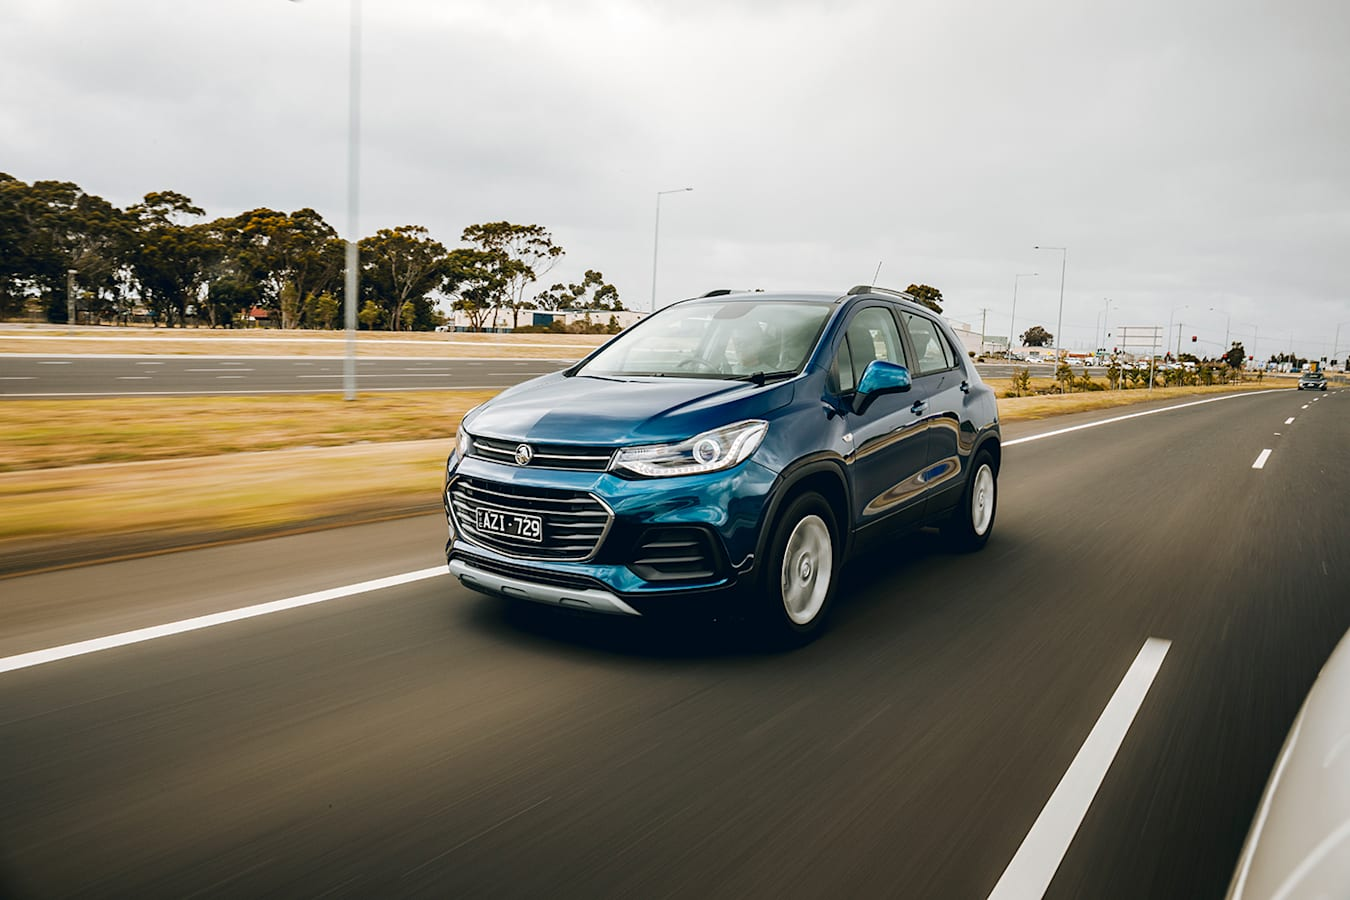 2020 Holden Trax steering and control